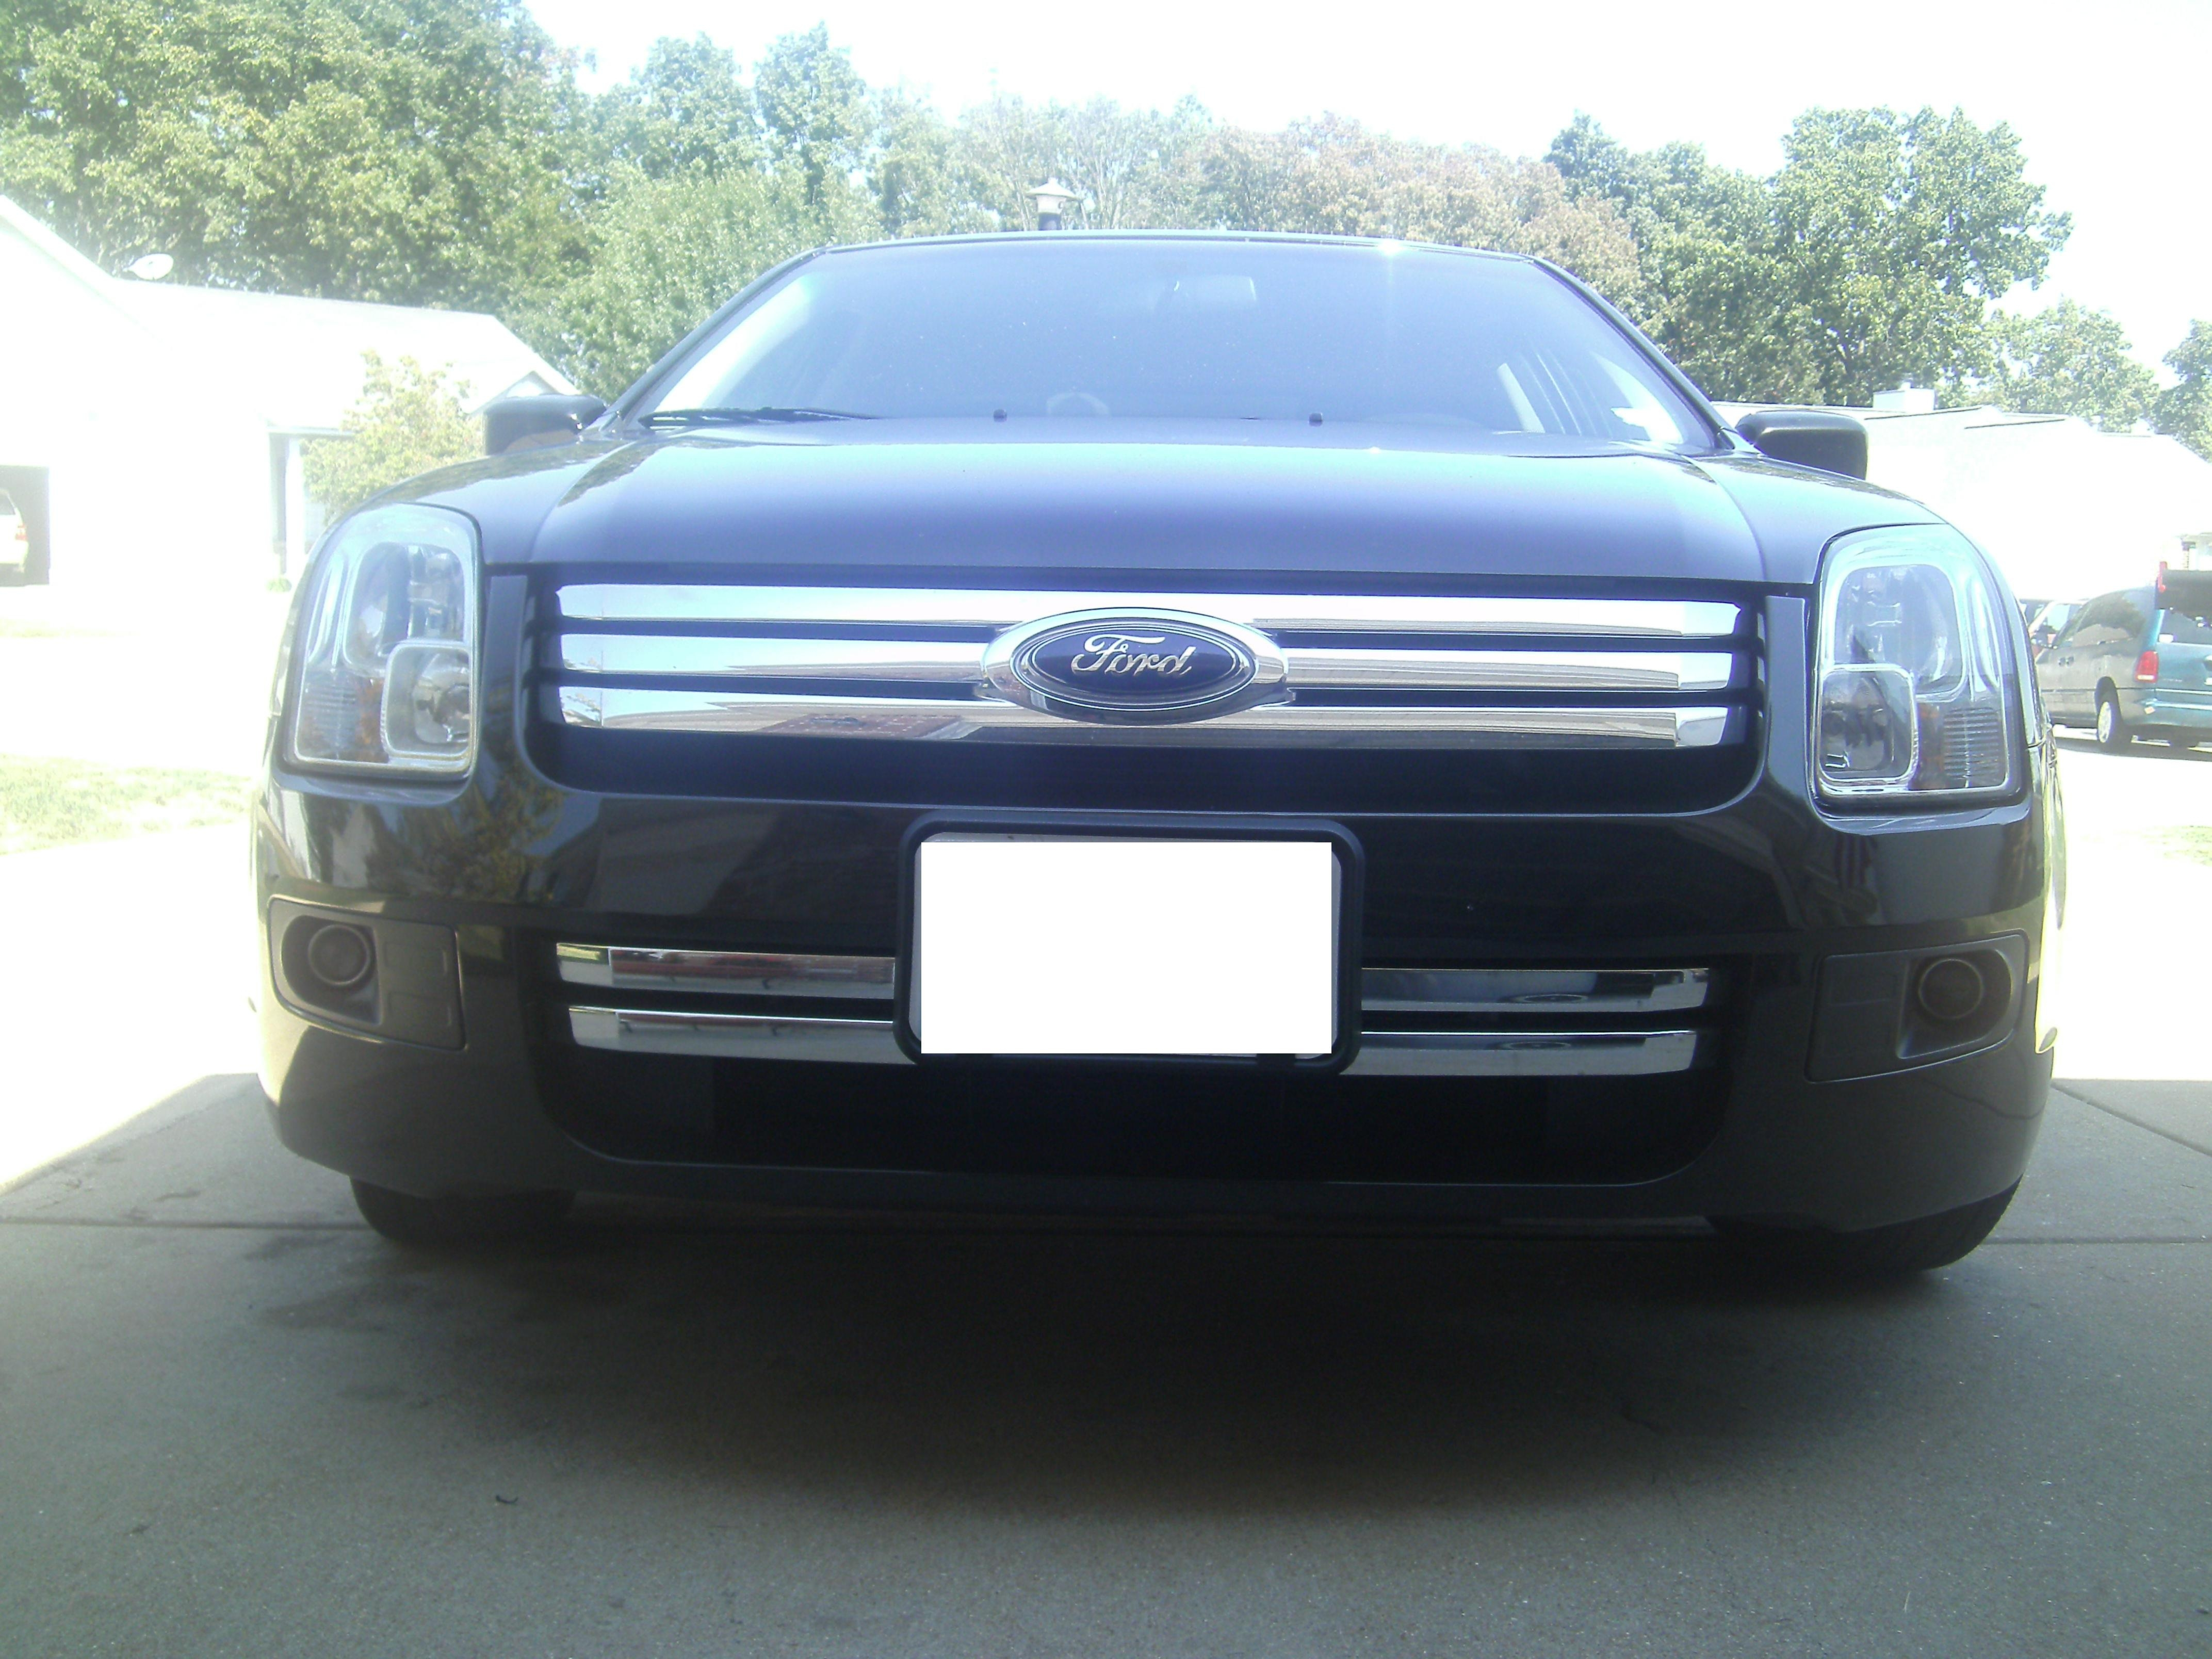 gman1619's 2008 Ford Fusion